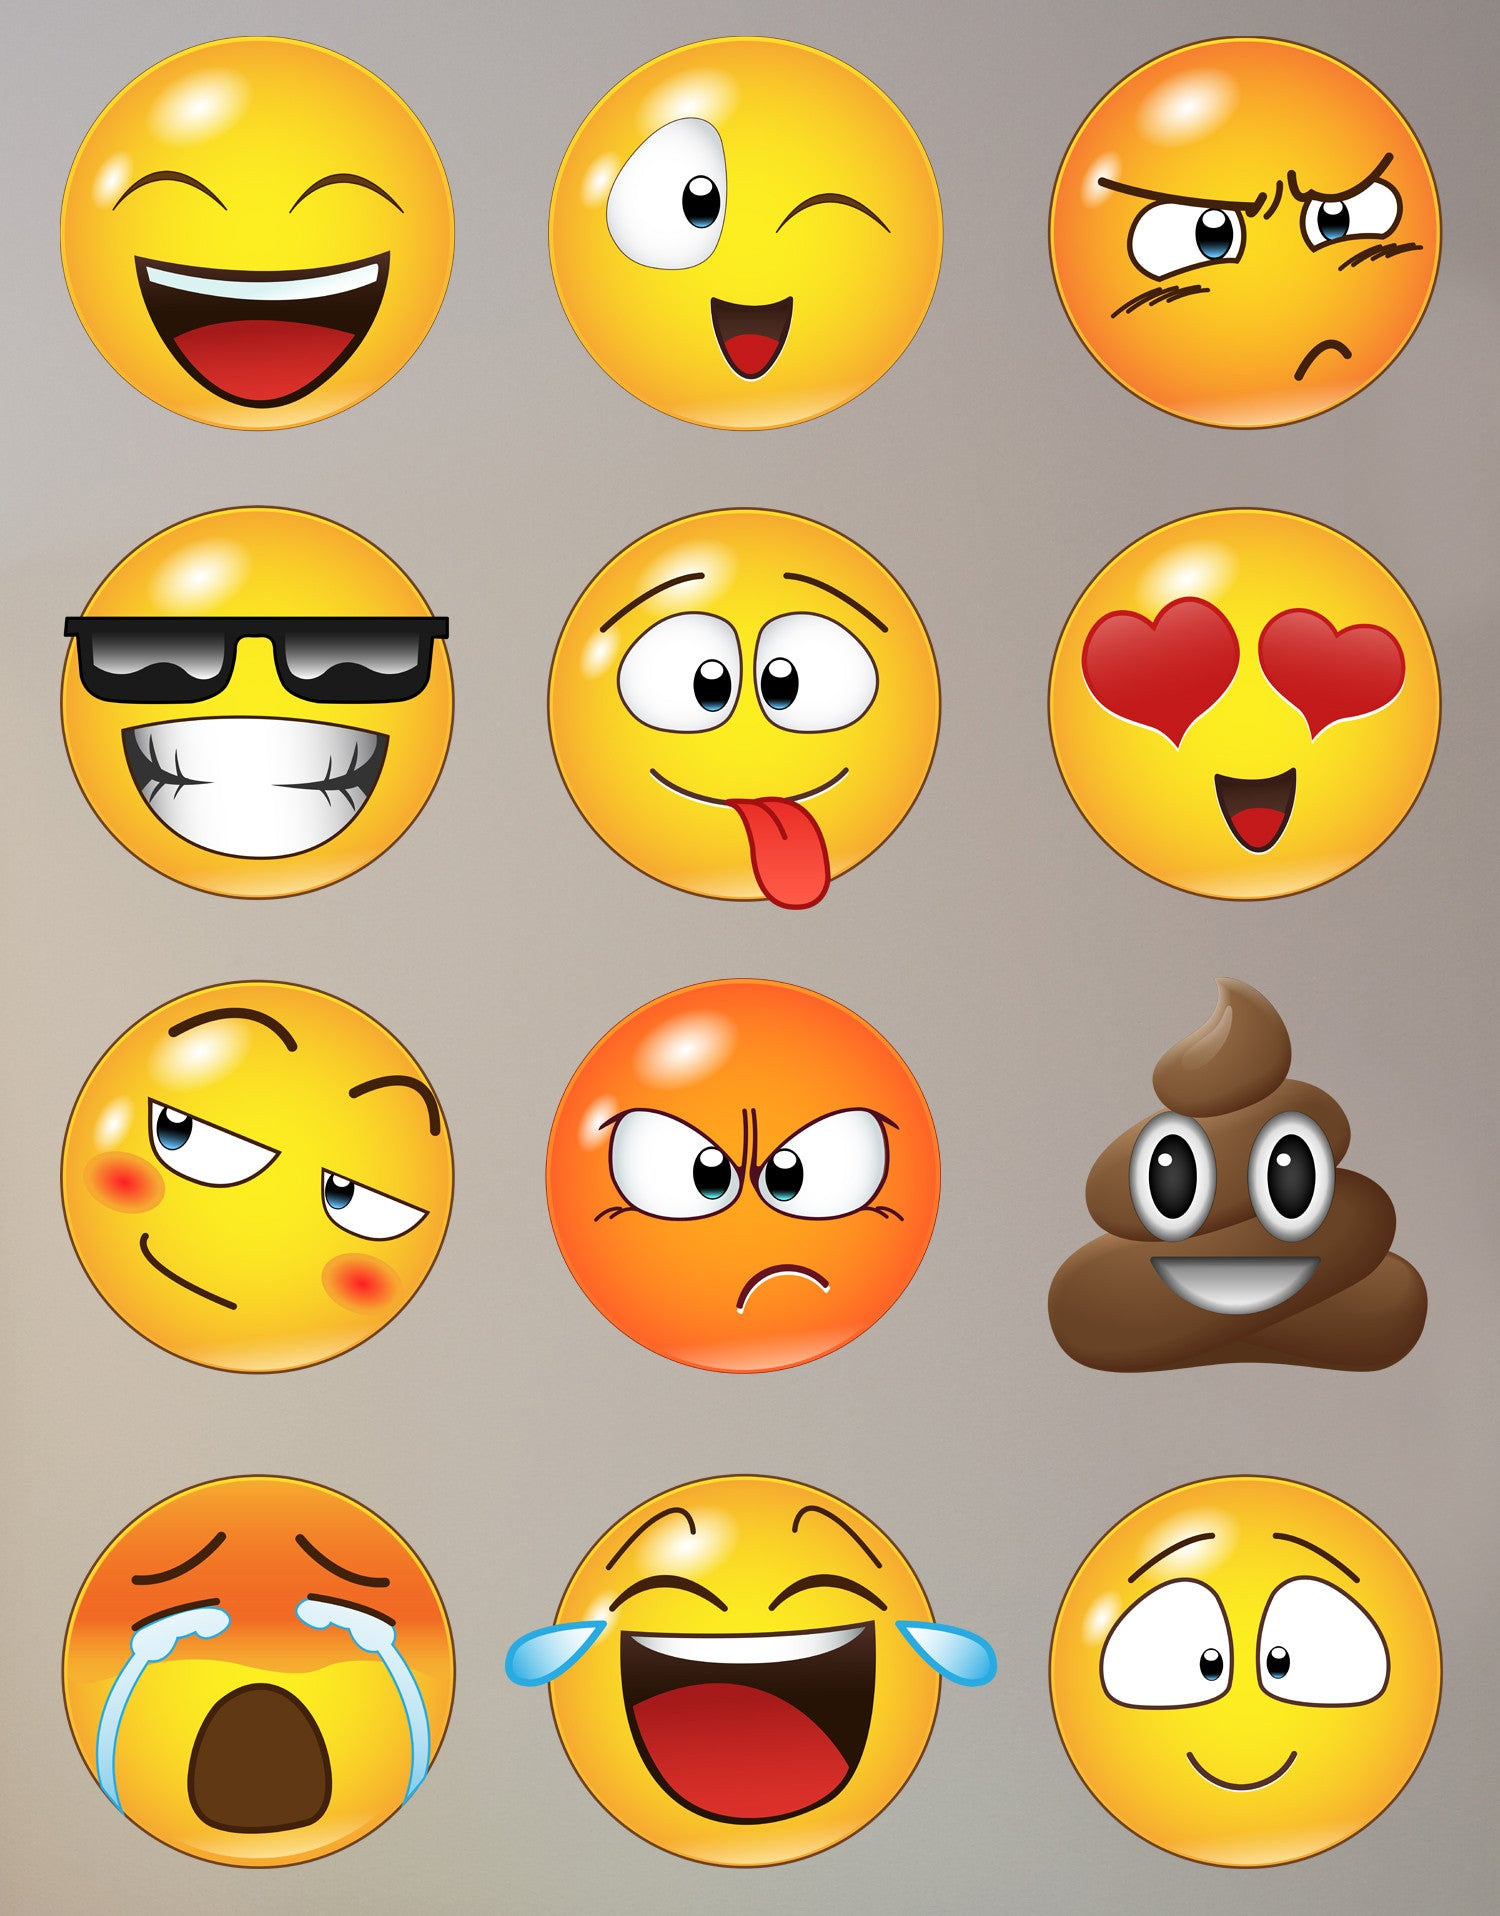 Emoji Wall Decals Emoji Stickers For Wall StickerBrand - Emoji wall decals